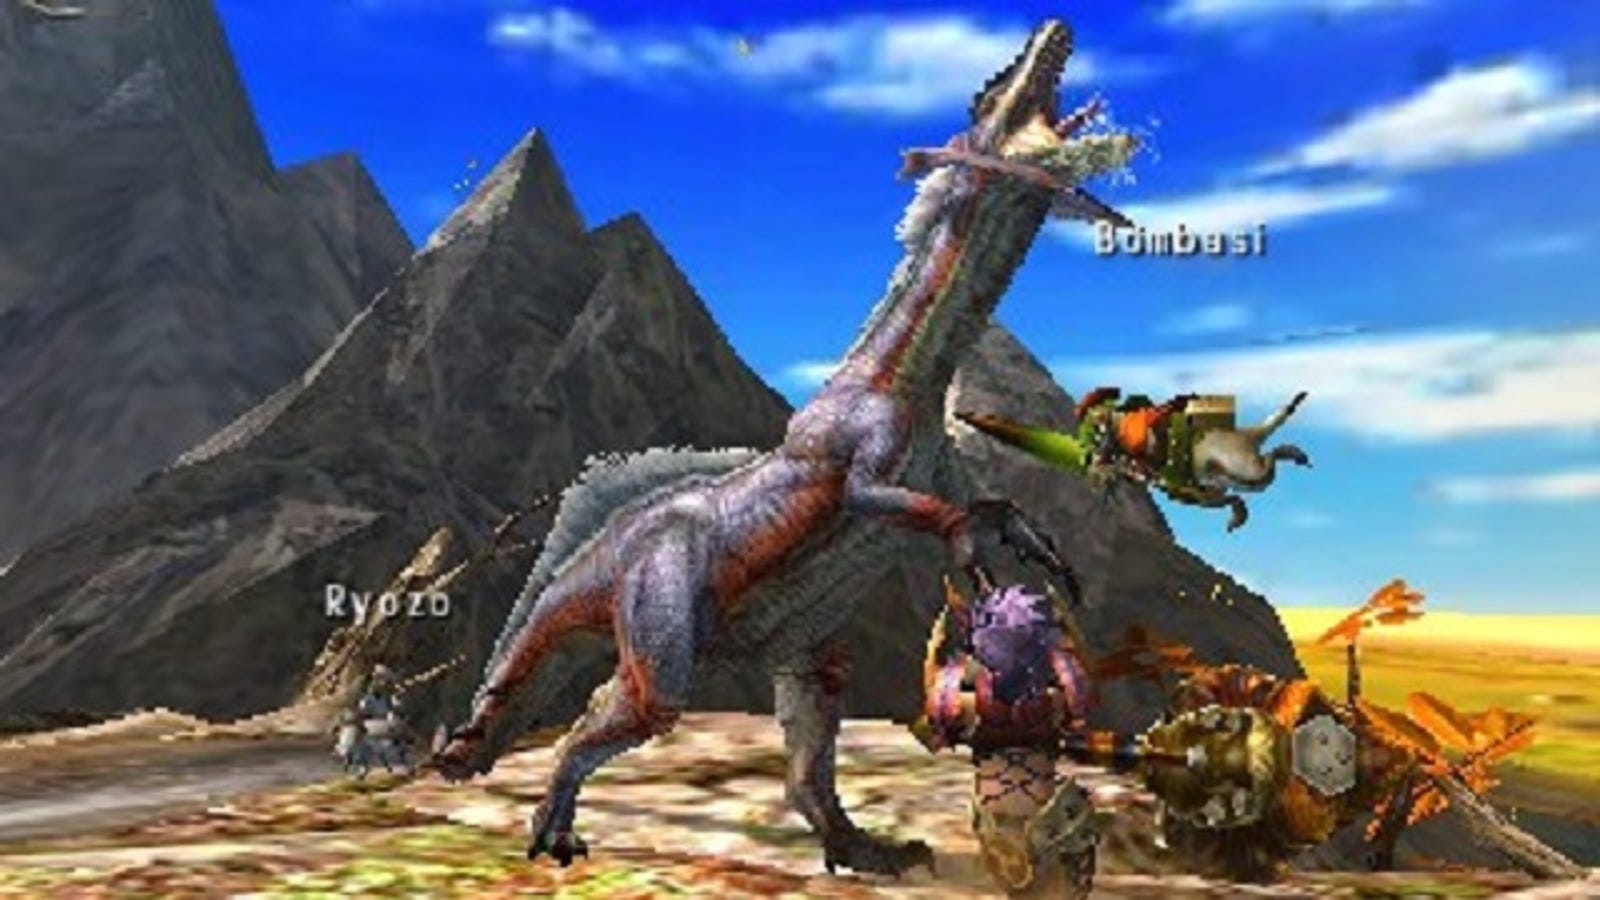 Monster Hunter 4 Ultimate Focuses On More Than Ground Level